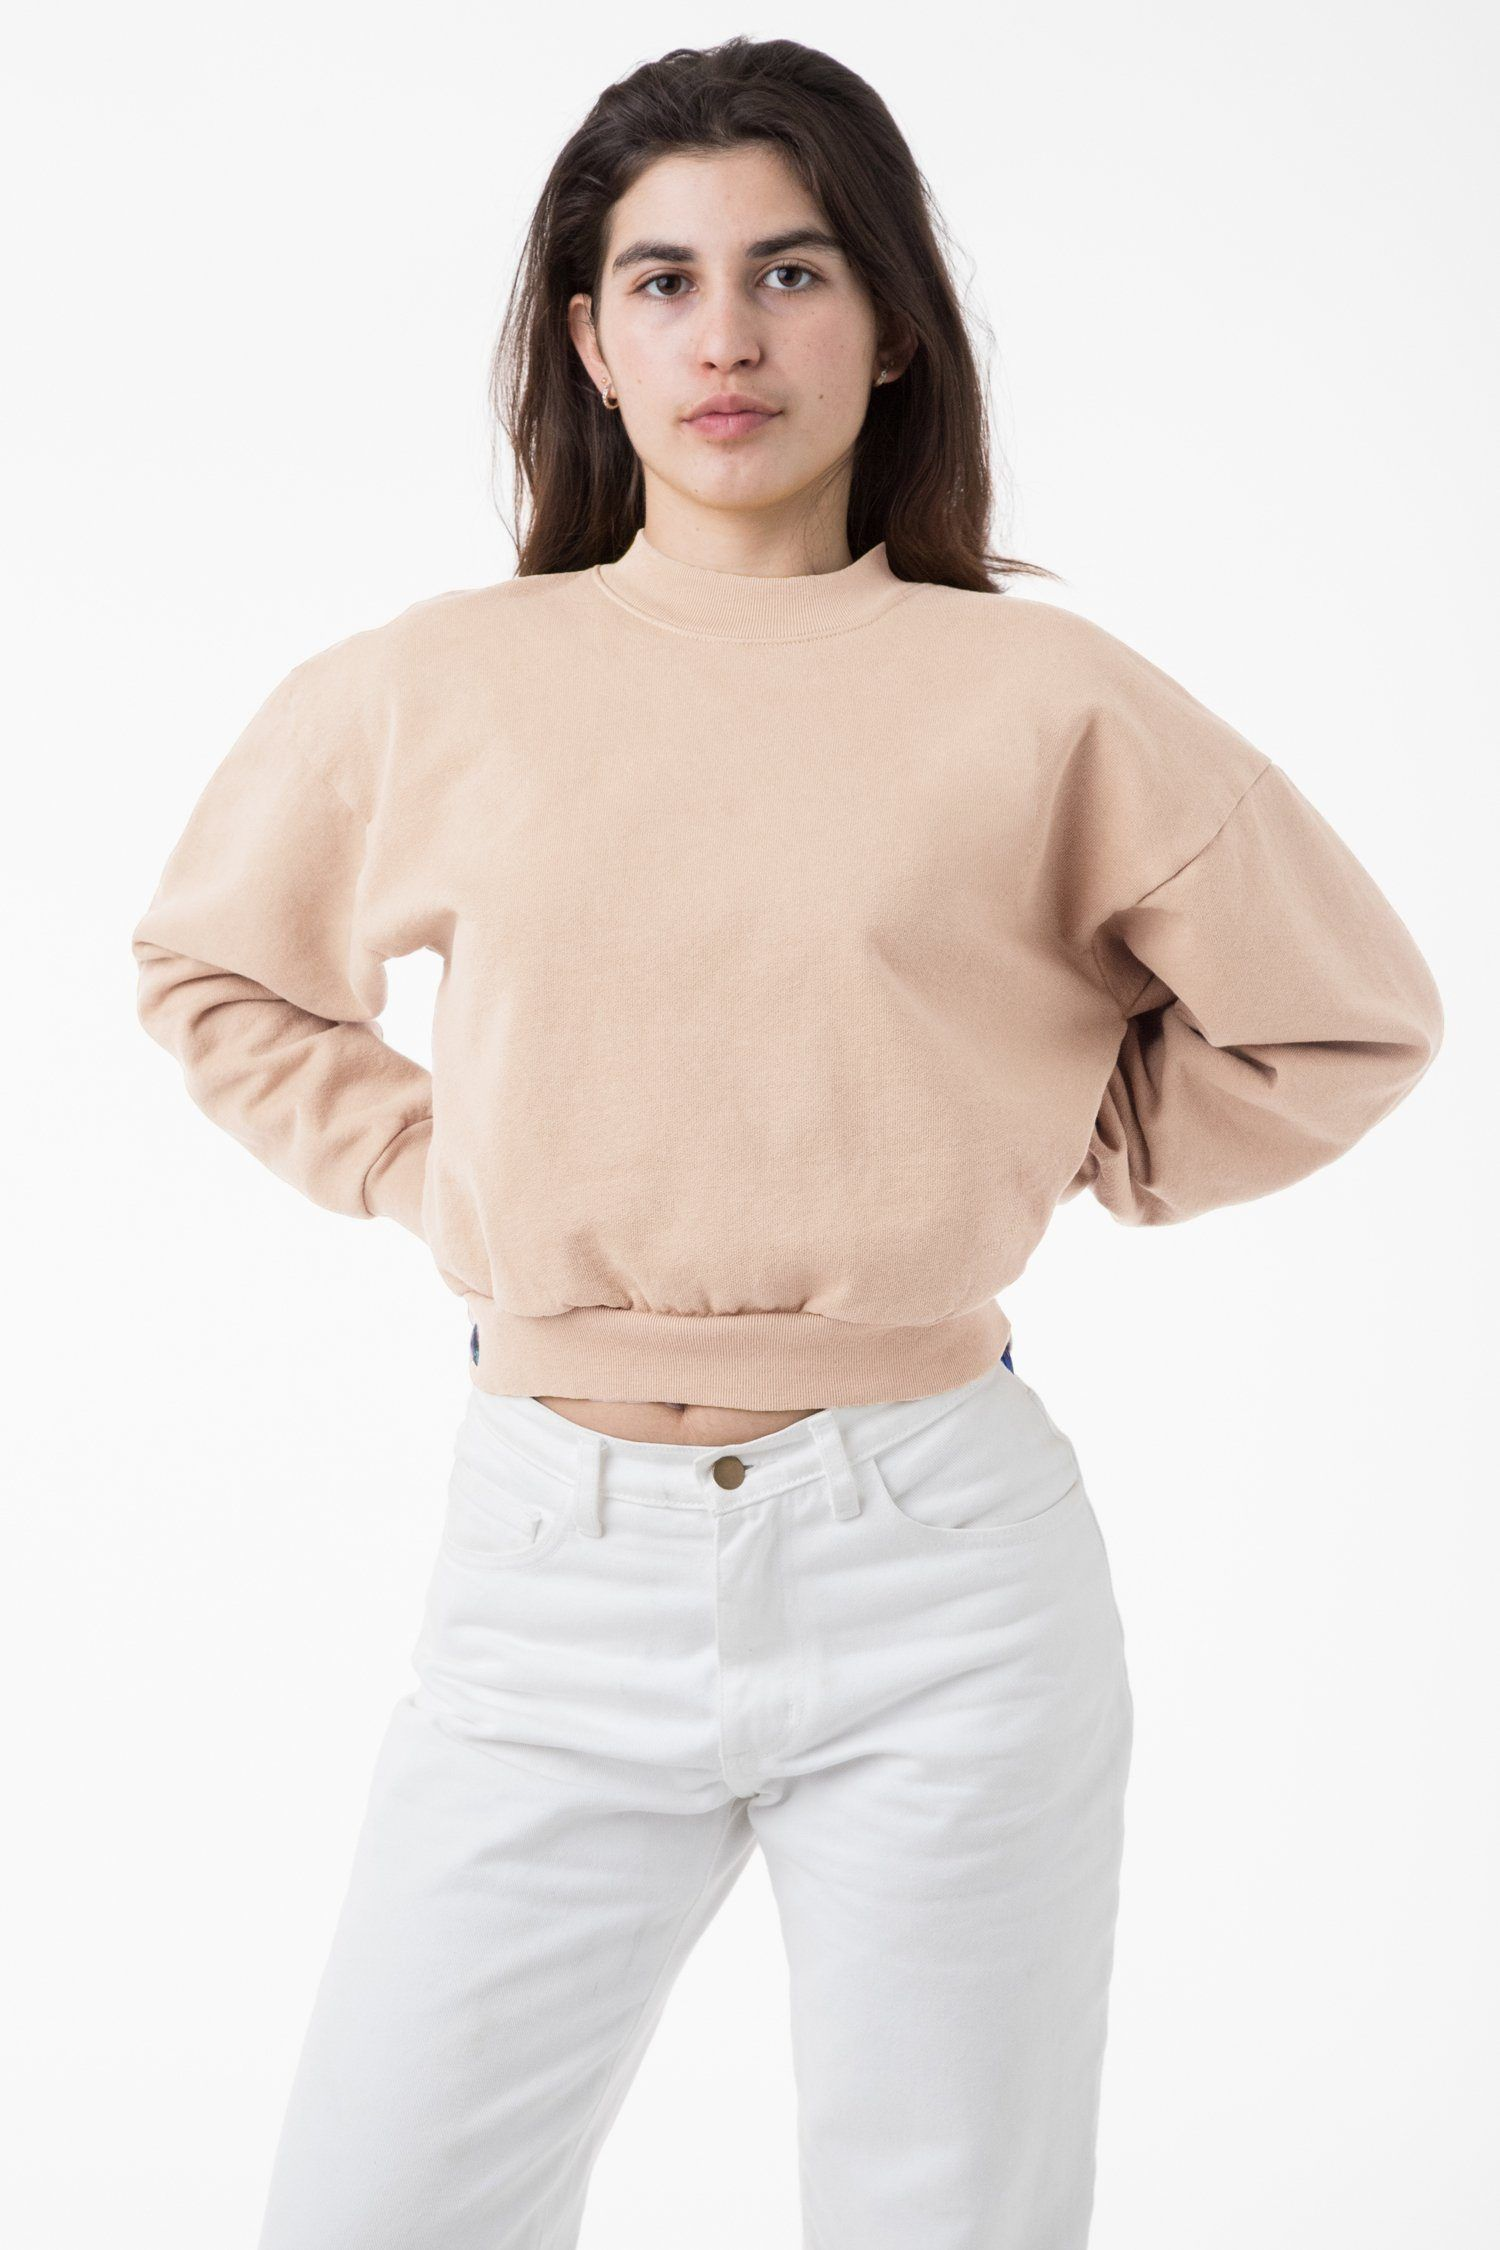 Hf06gd 14 Oz Garment Dye Heavy Fleece Cropped Mock Neck Pullover Garment Dye Sweatshirts Women High Waisted Pants